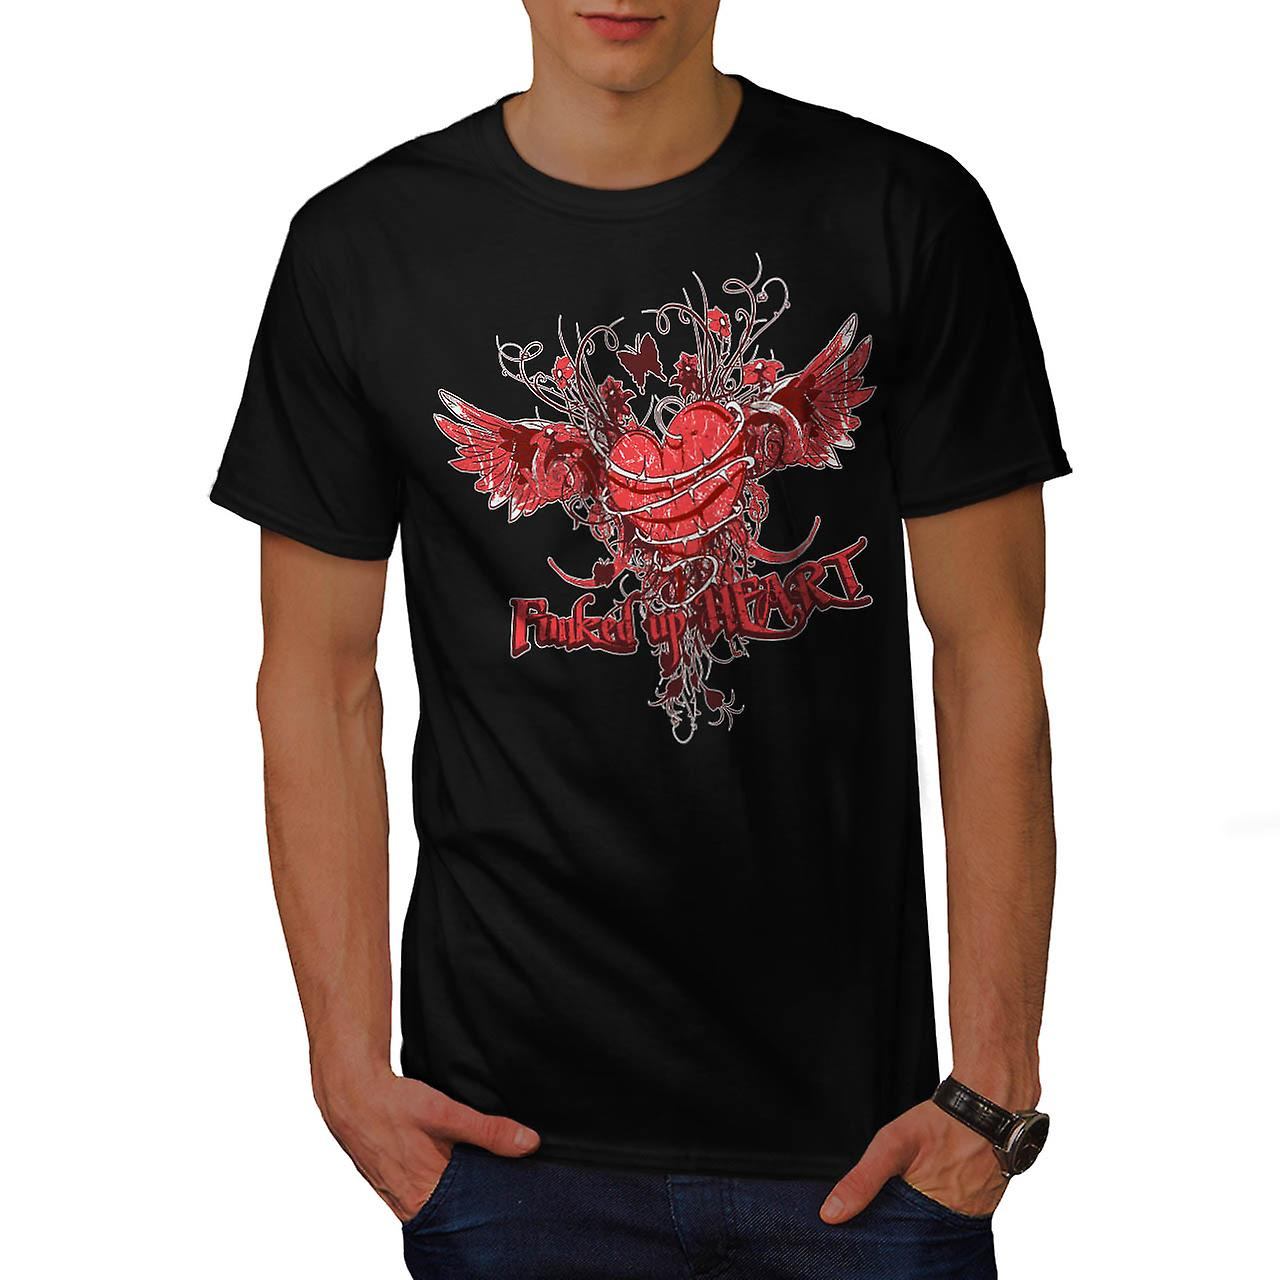 Funked Up Heart Love Thorn Rose Men Black T-shirt | Wellcoda